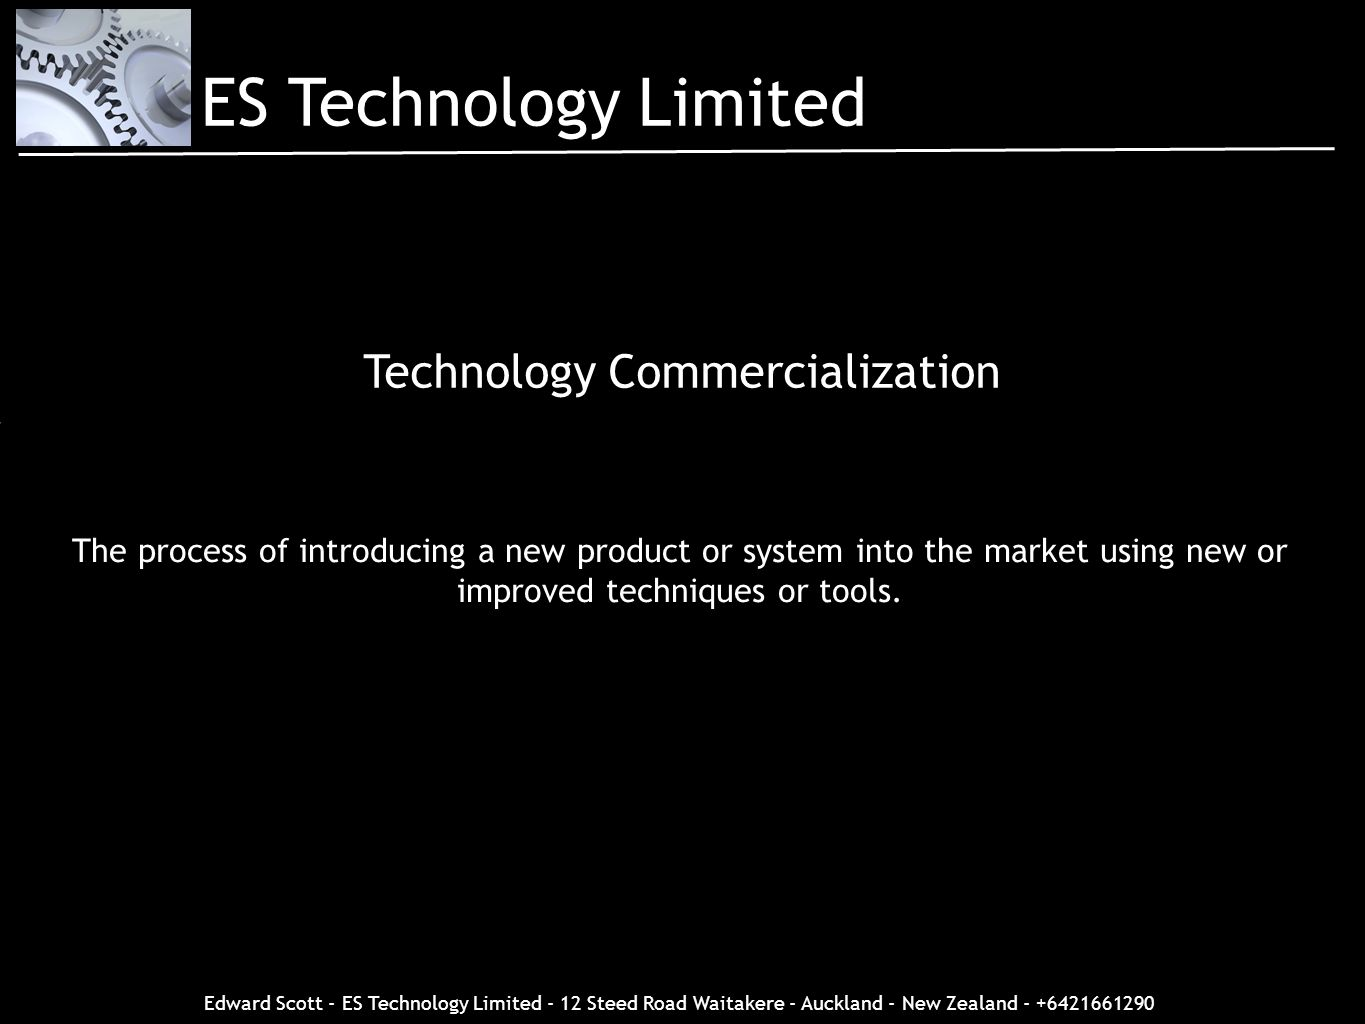 Edward Scott - ES Technology Limited - 12 Steed Road Waitakere - Auckland - New Zealand - +6421661290 The process of introducing a new product or syst